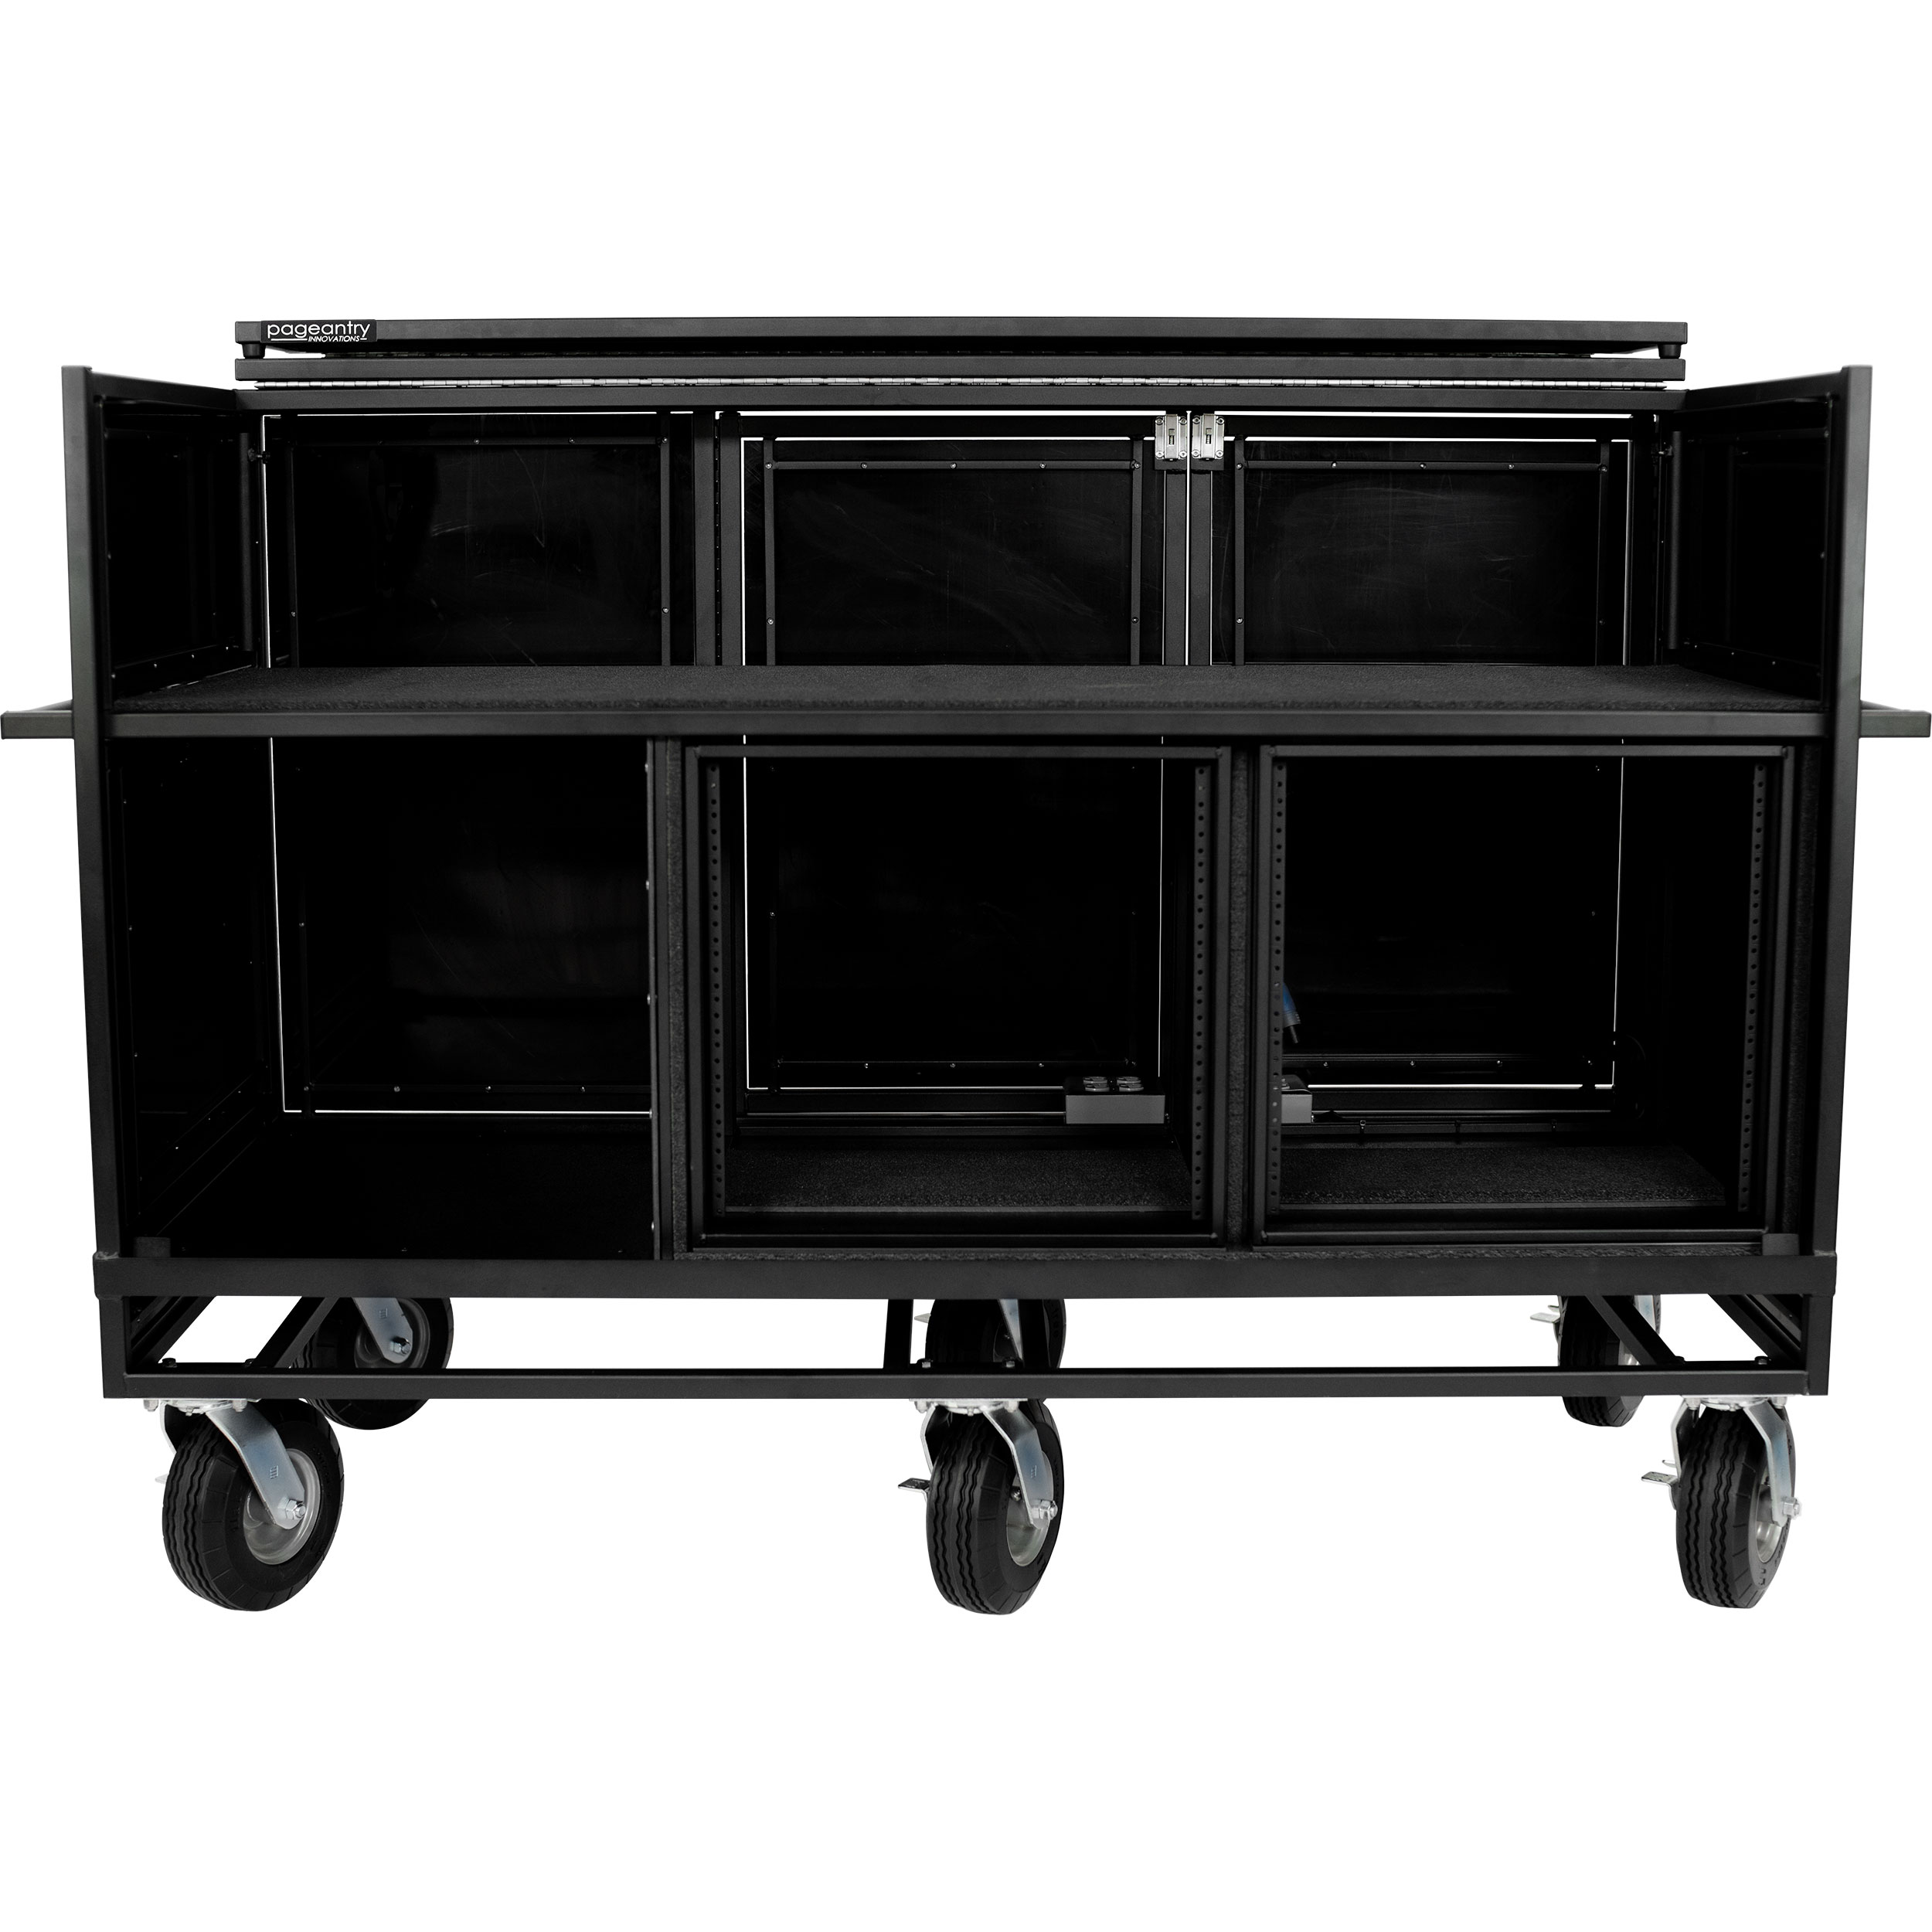 Pageantry Innovations Standard Triple Mixer Cart with Bi-Fold Top Cover